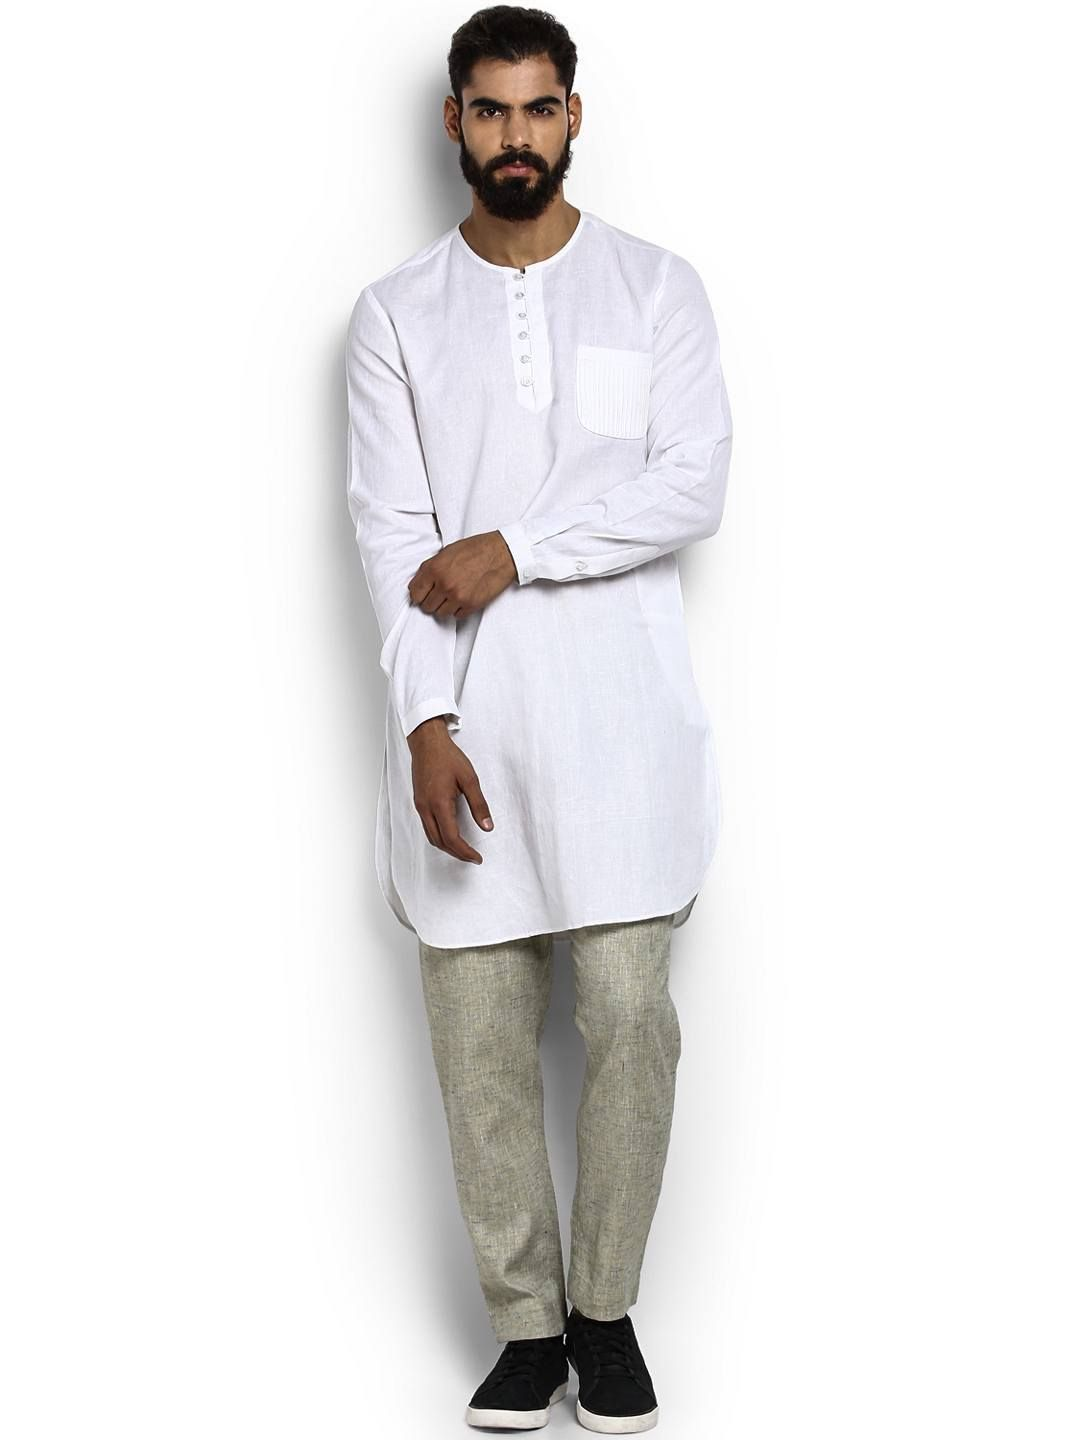 With what things does a white tunic of cotton combine